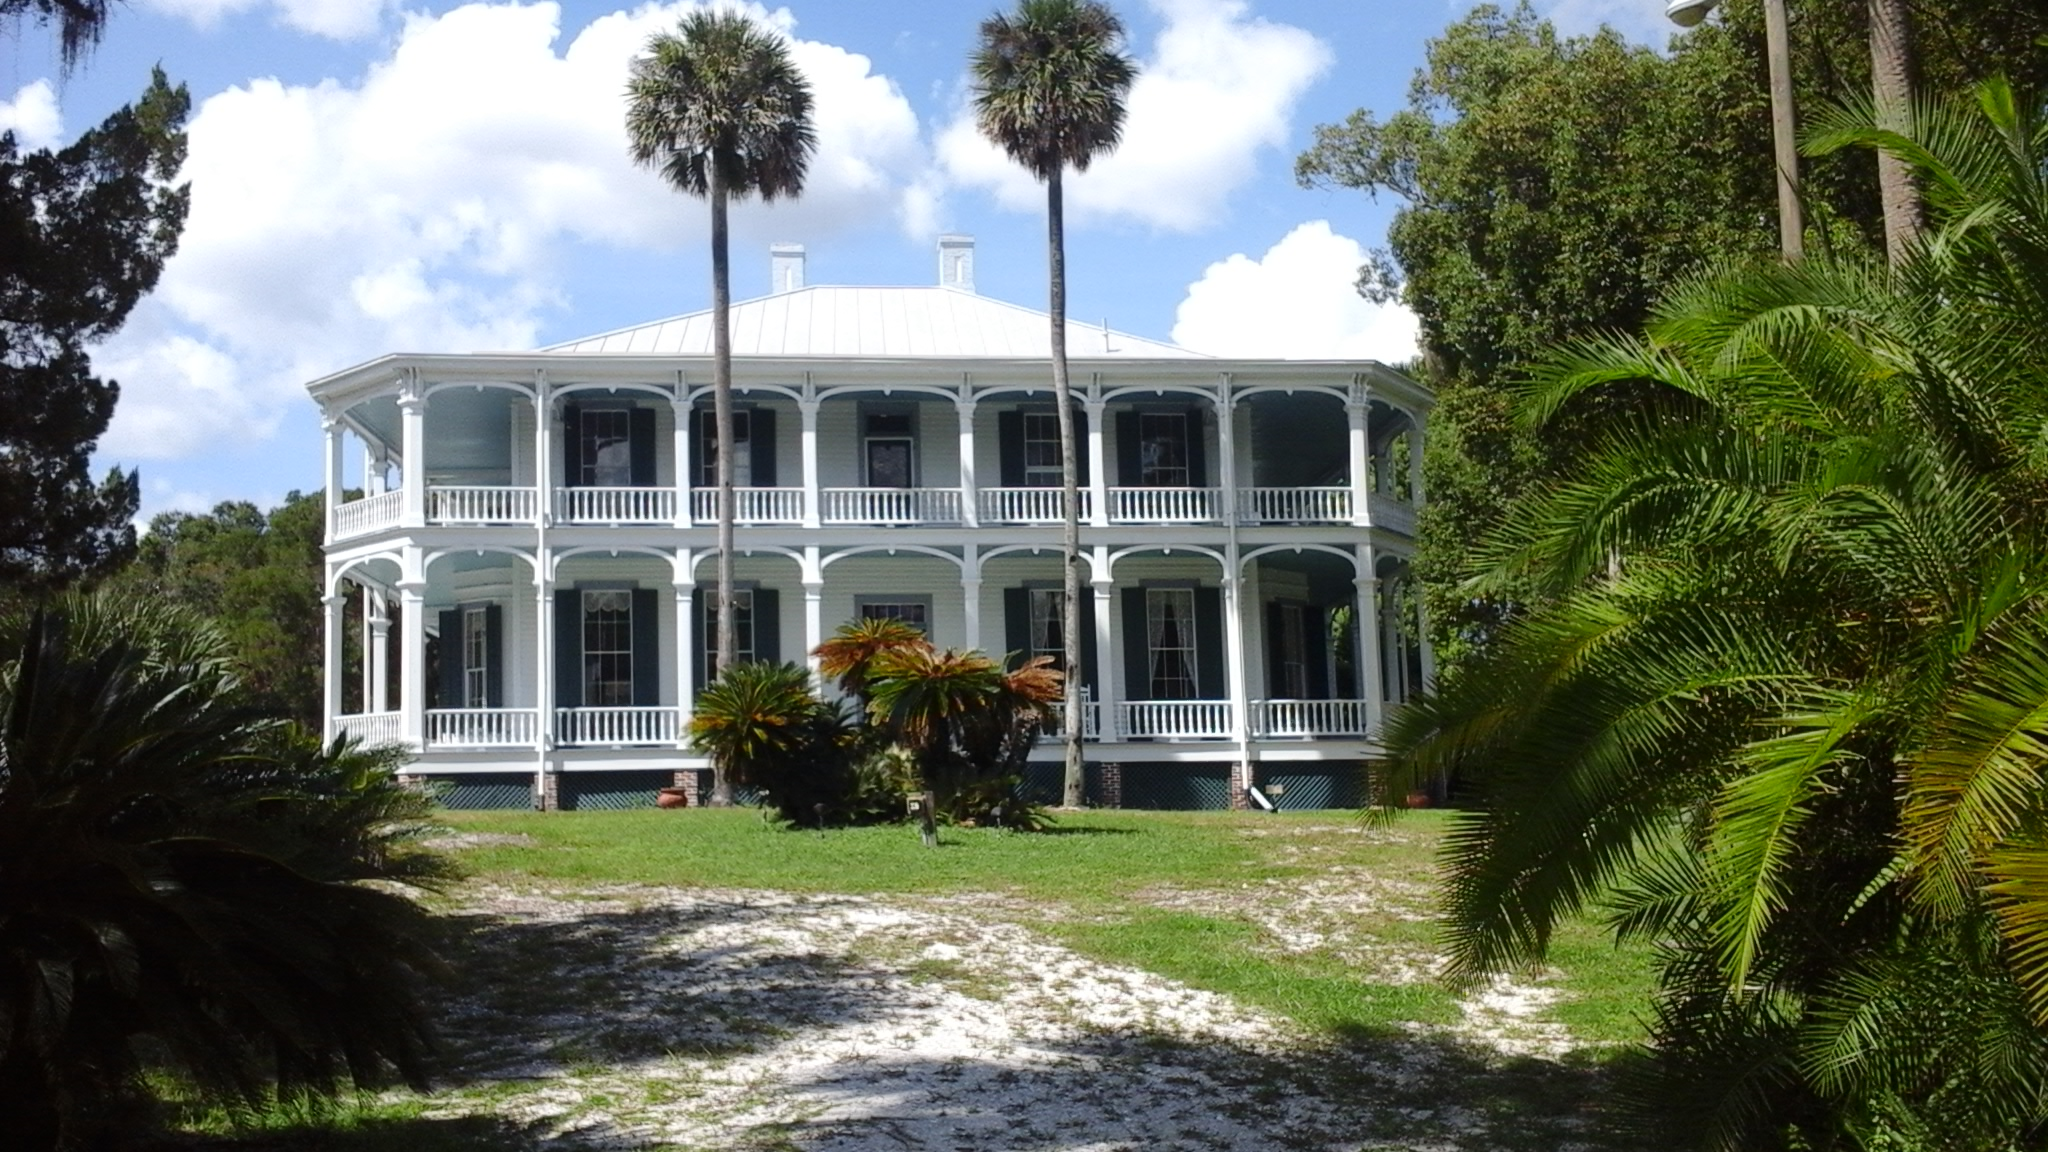 Image of main home DeBary Hall